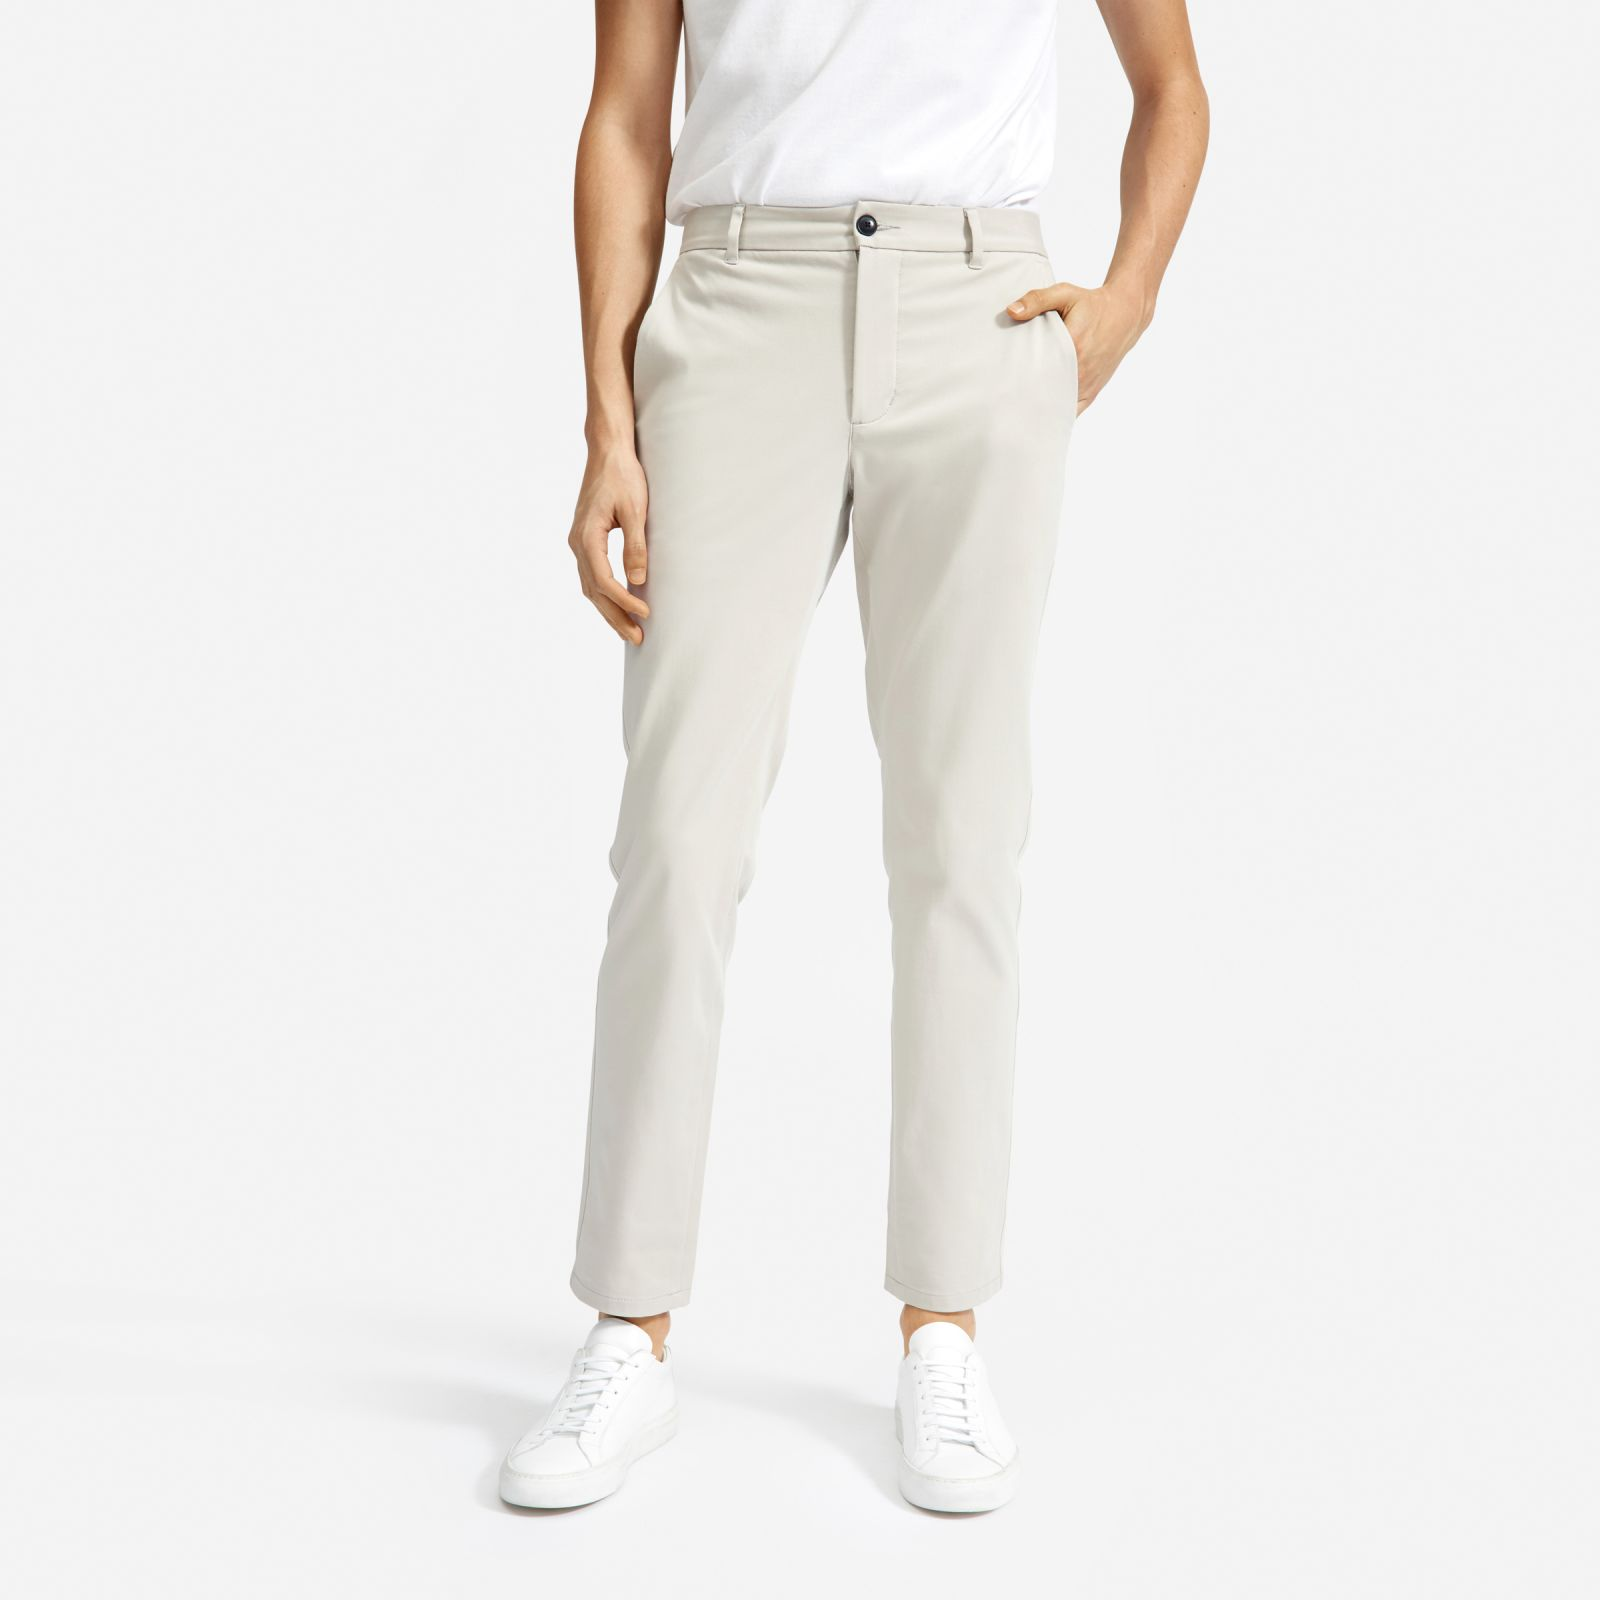 men's performance chino by everlane in stone, size 38x34